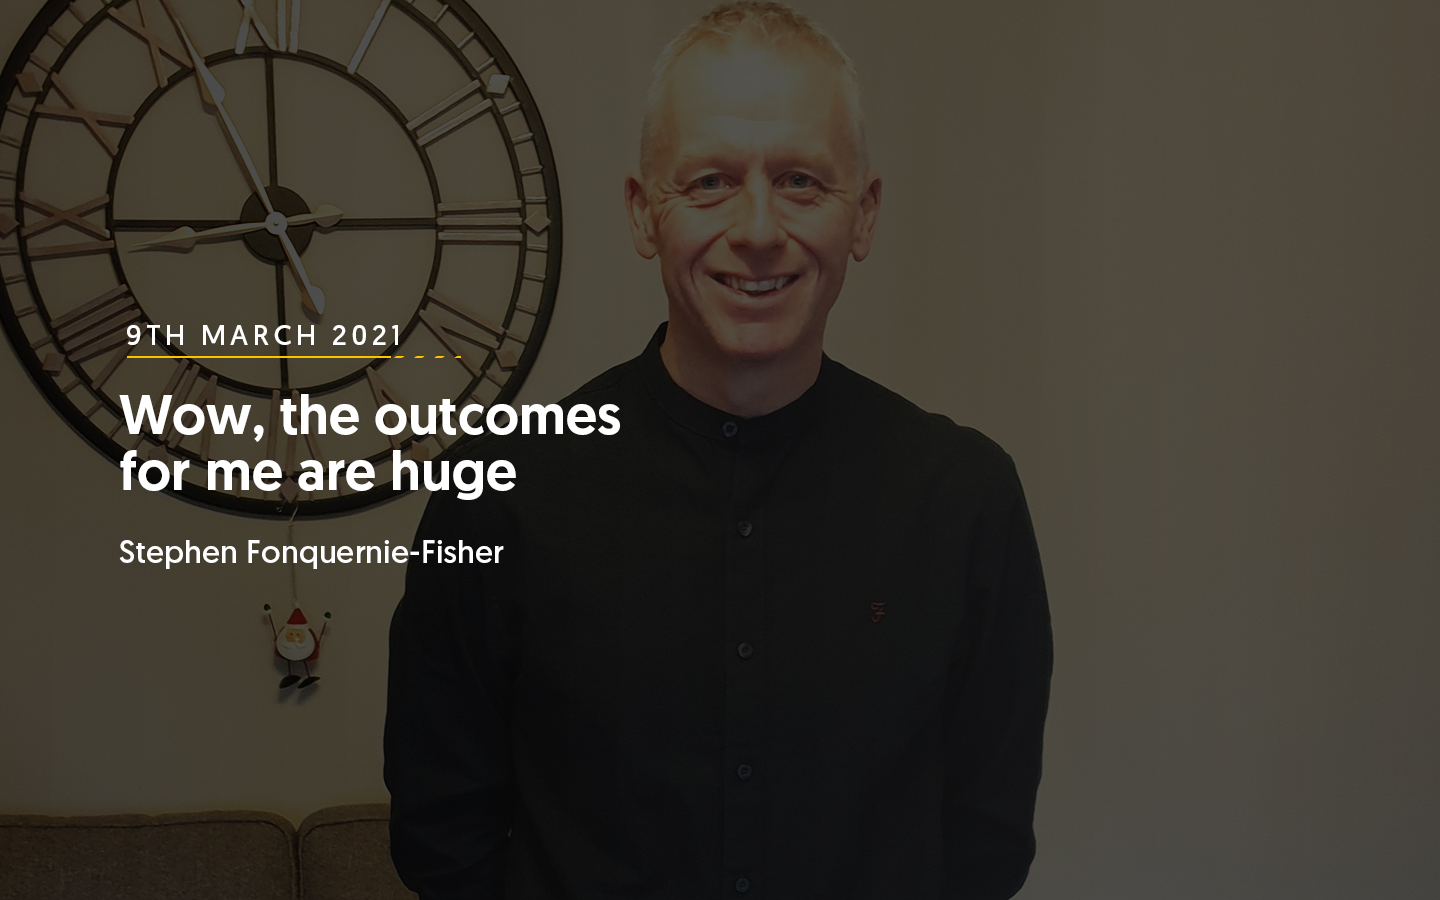 Wow, the outcomes for me are huge – Stephen Fonquernie-Fisher